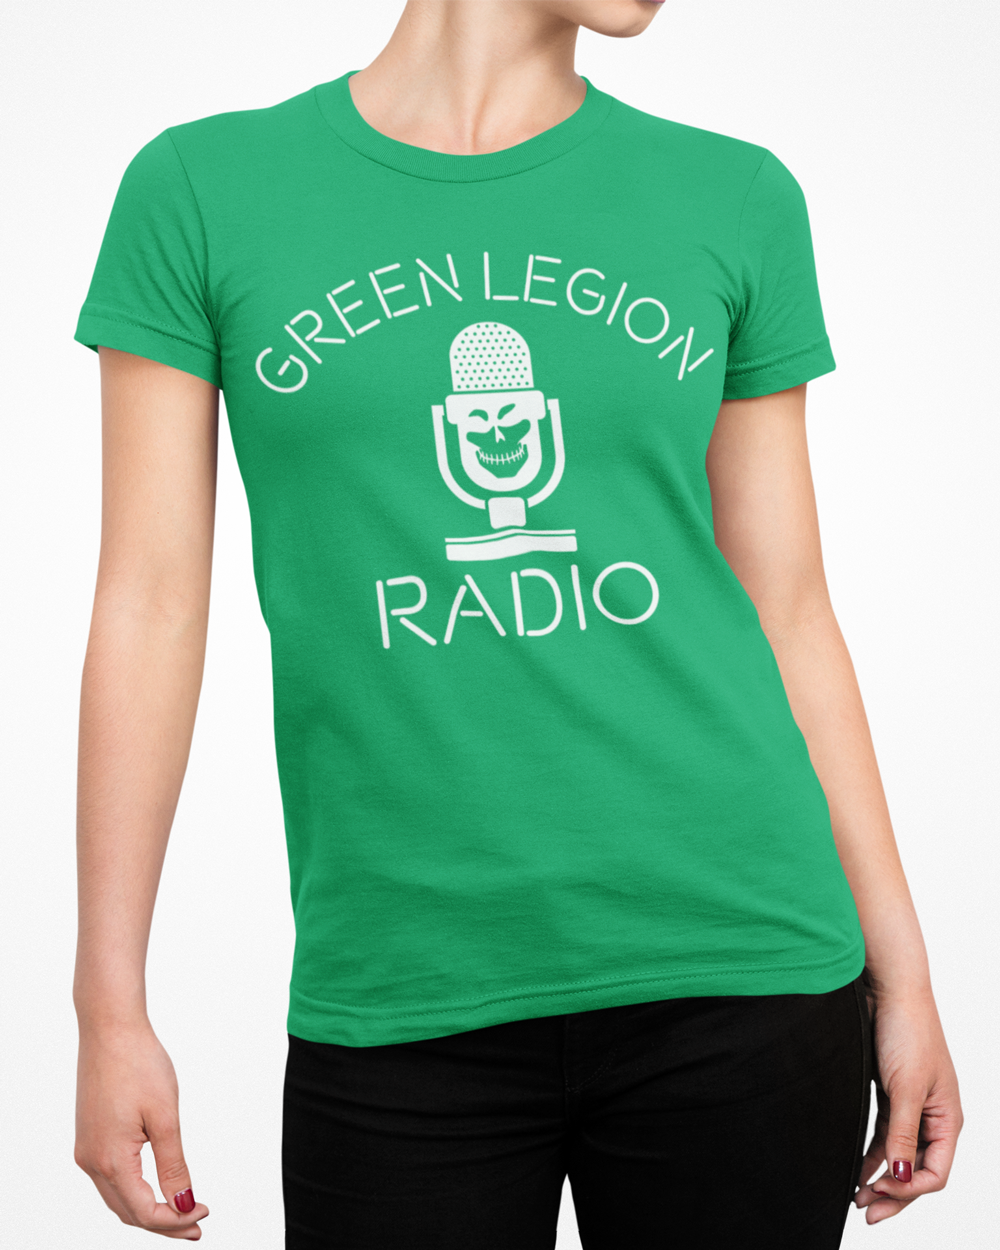 Green Legion Radio Retro Kelly Green T-Shirt